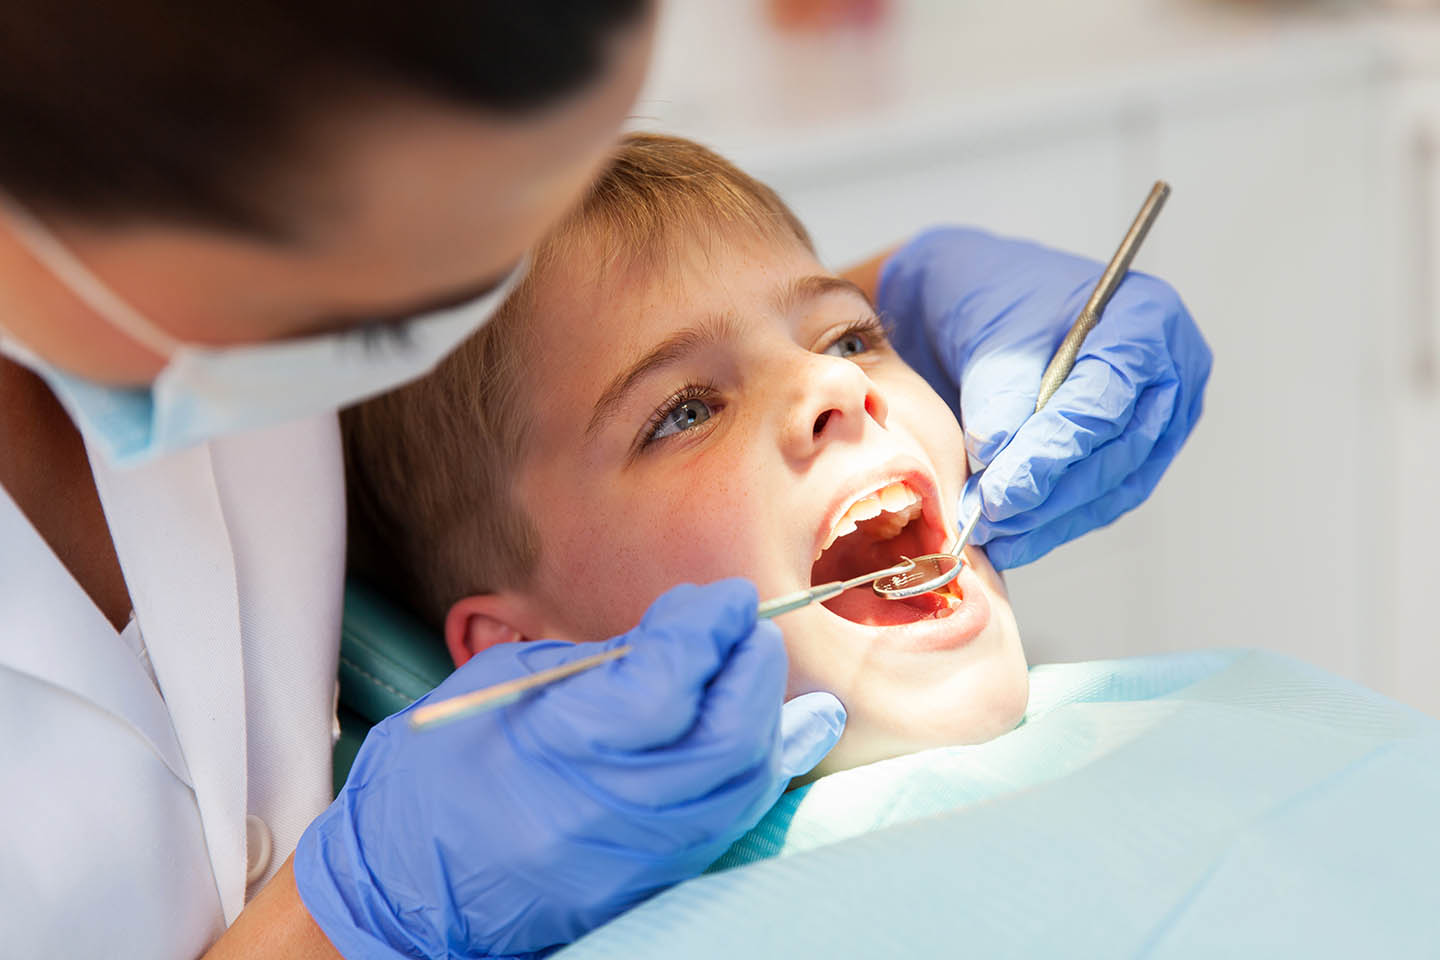 Dentist cleaning young boy's teeth